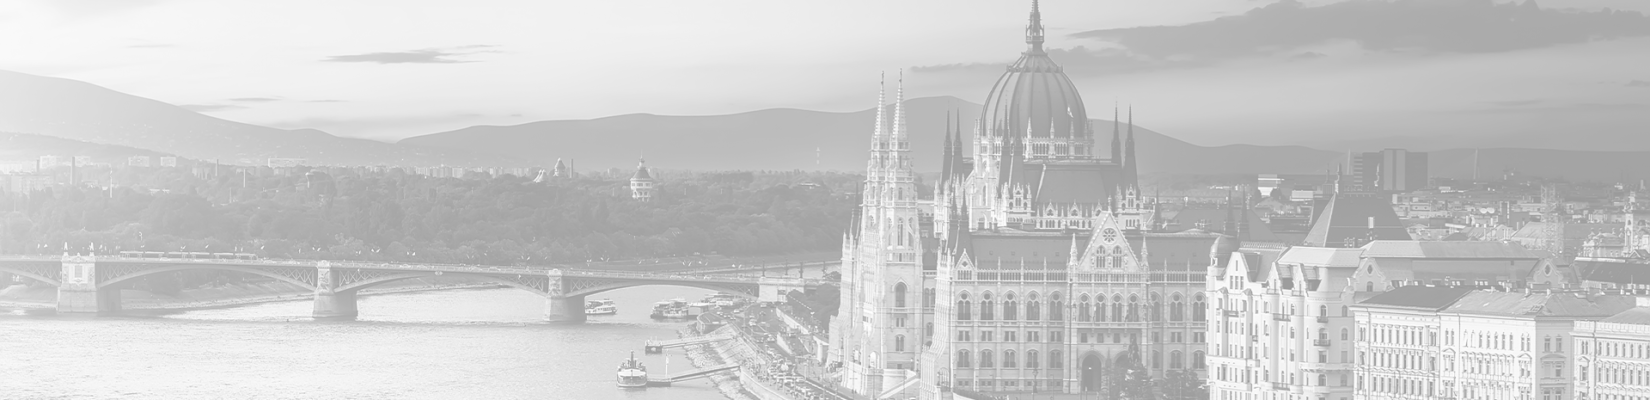 Transparent-Grey Background of City in Hungary